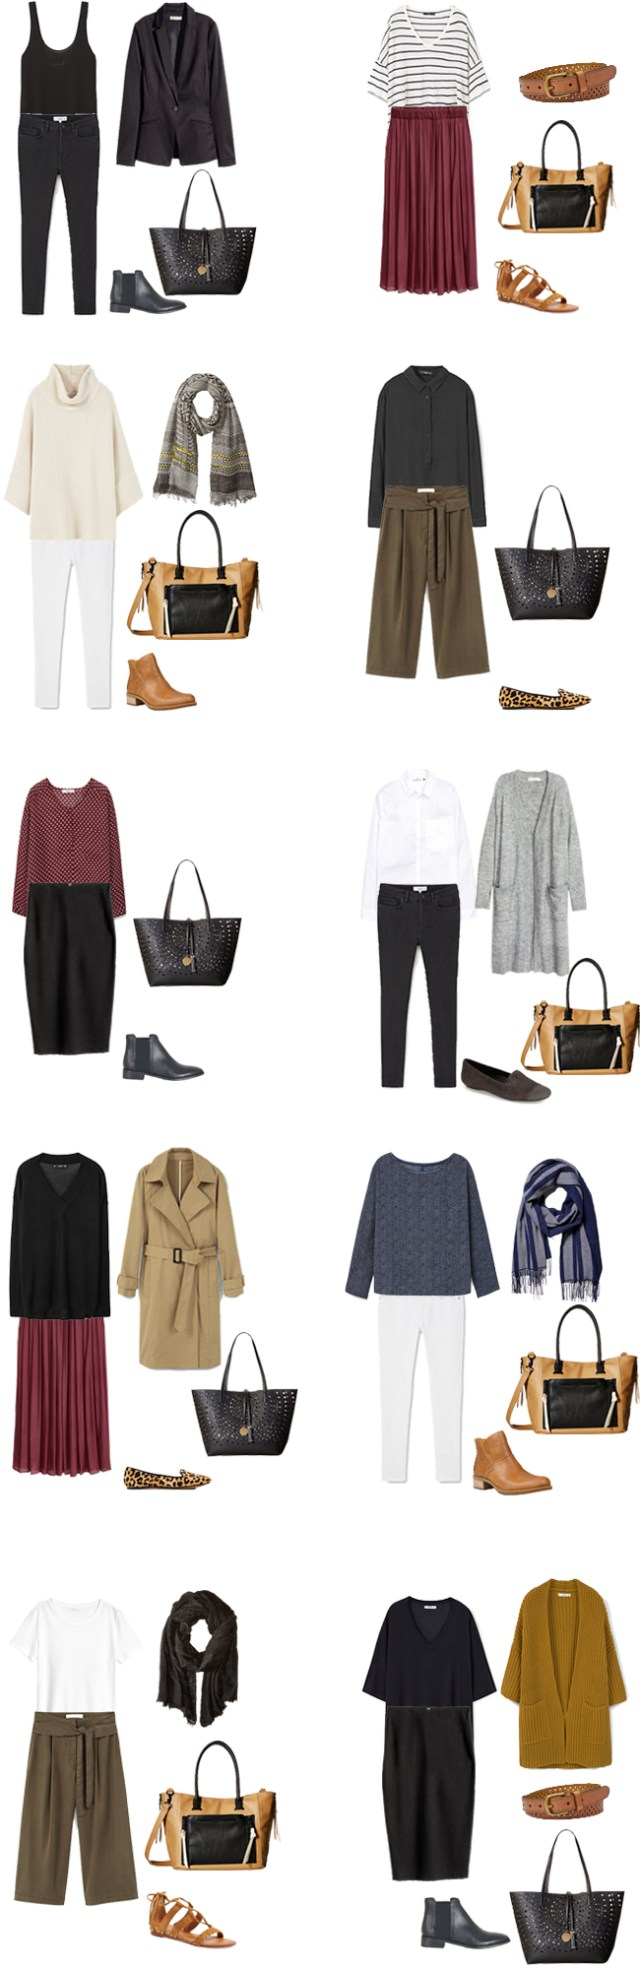 Teacher Capsule What to Wear Outfits Options 1-10 #capsule #capsulewardrobe #whattowear #teacherwardrobe